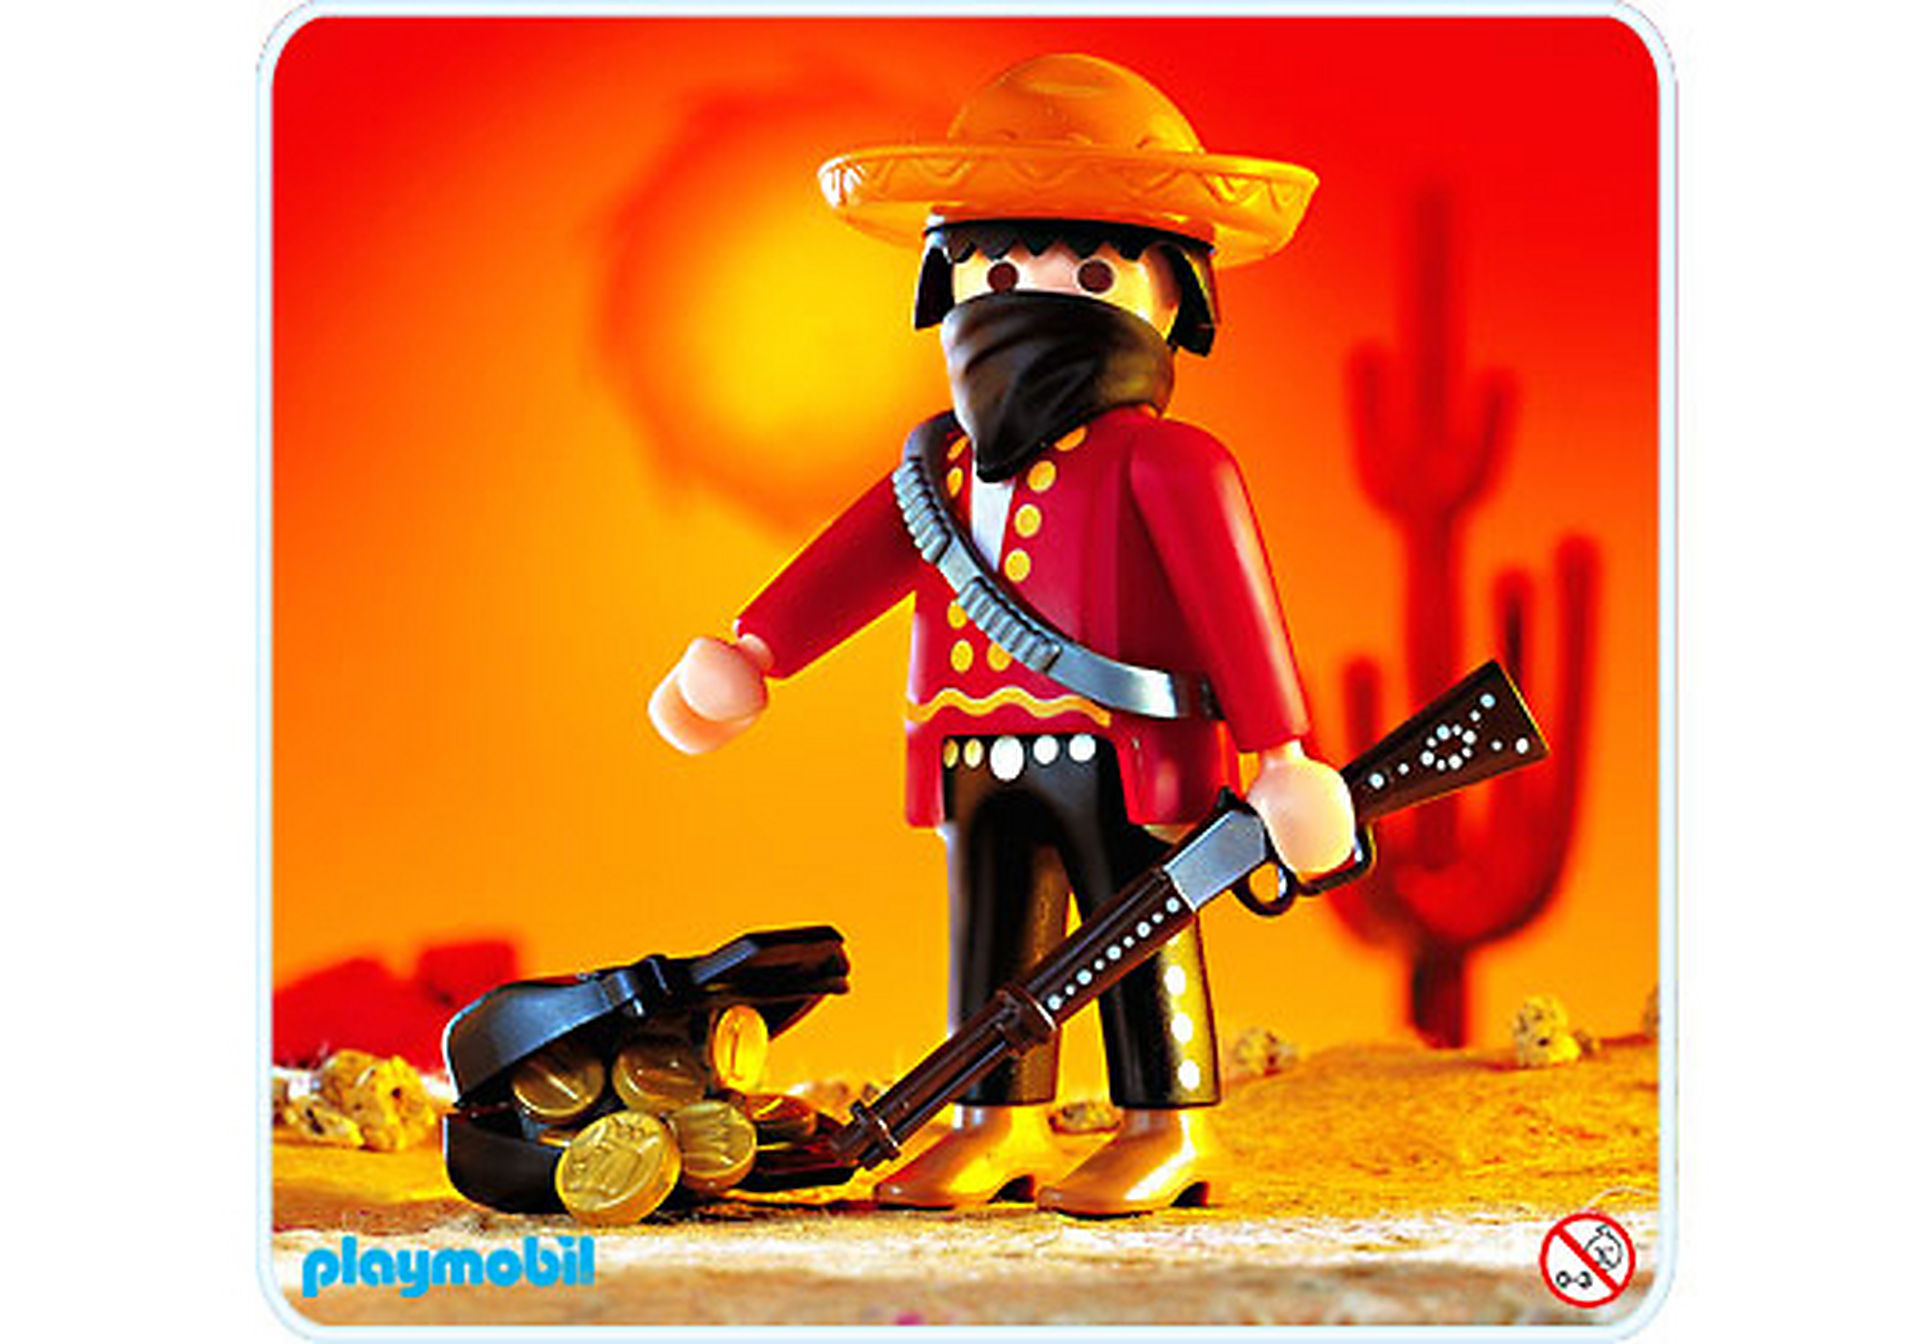 http://media.playmobil.com/i/playmobil/4544-A_product_detail/Bandit mexicain